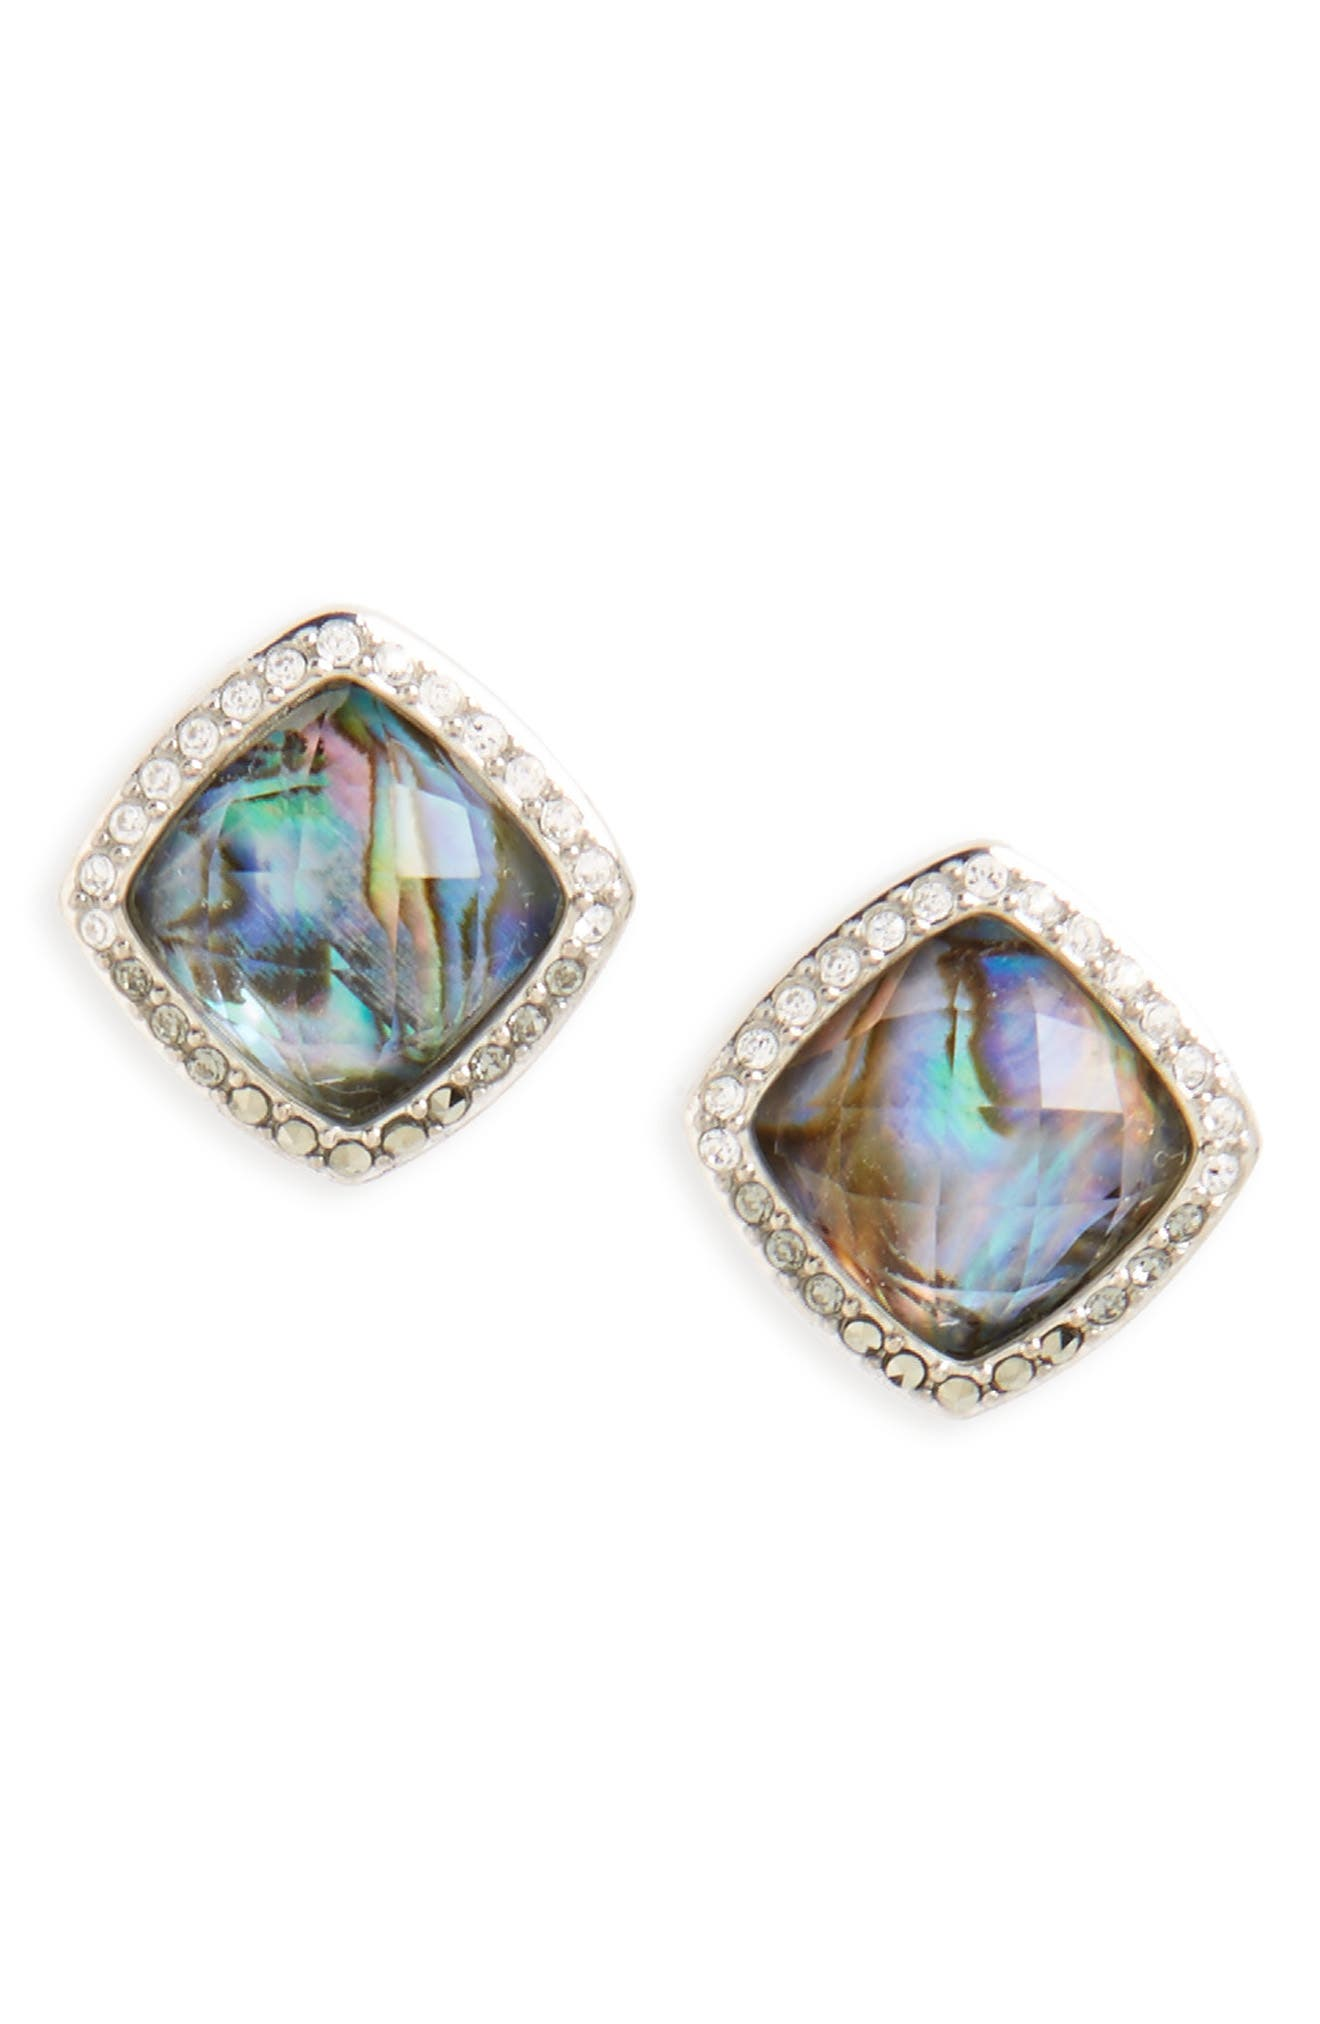 Main Image - Judith Jack Tropical Touches Doublet Stud Earrings